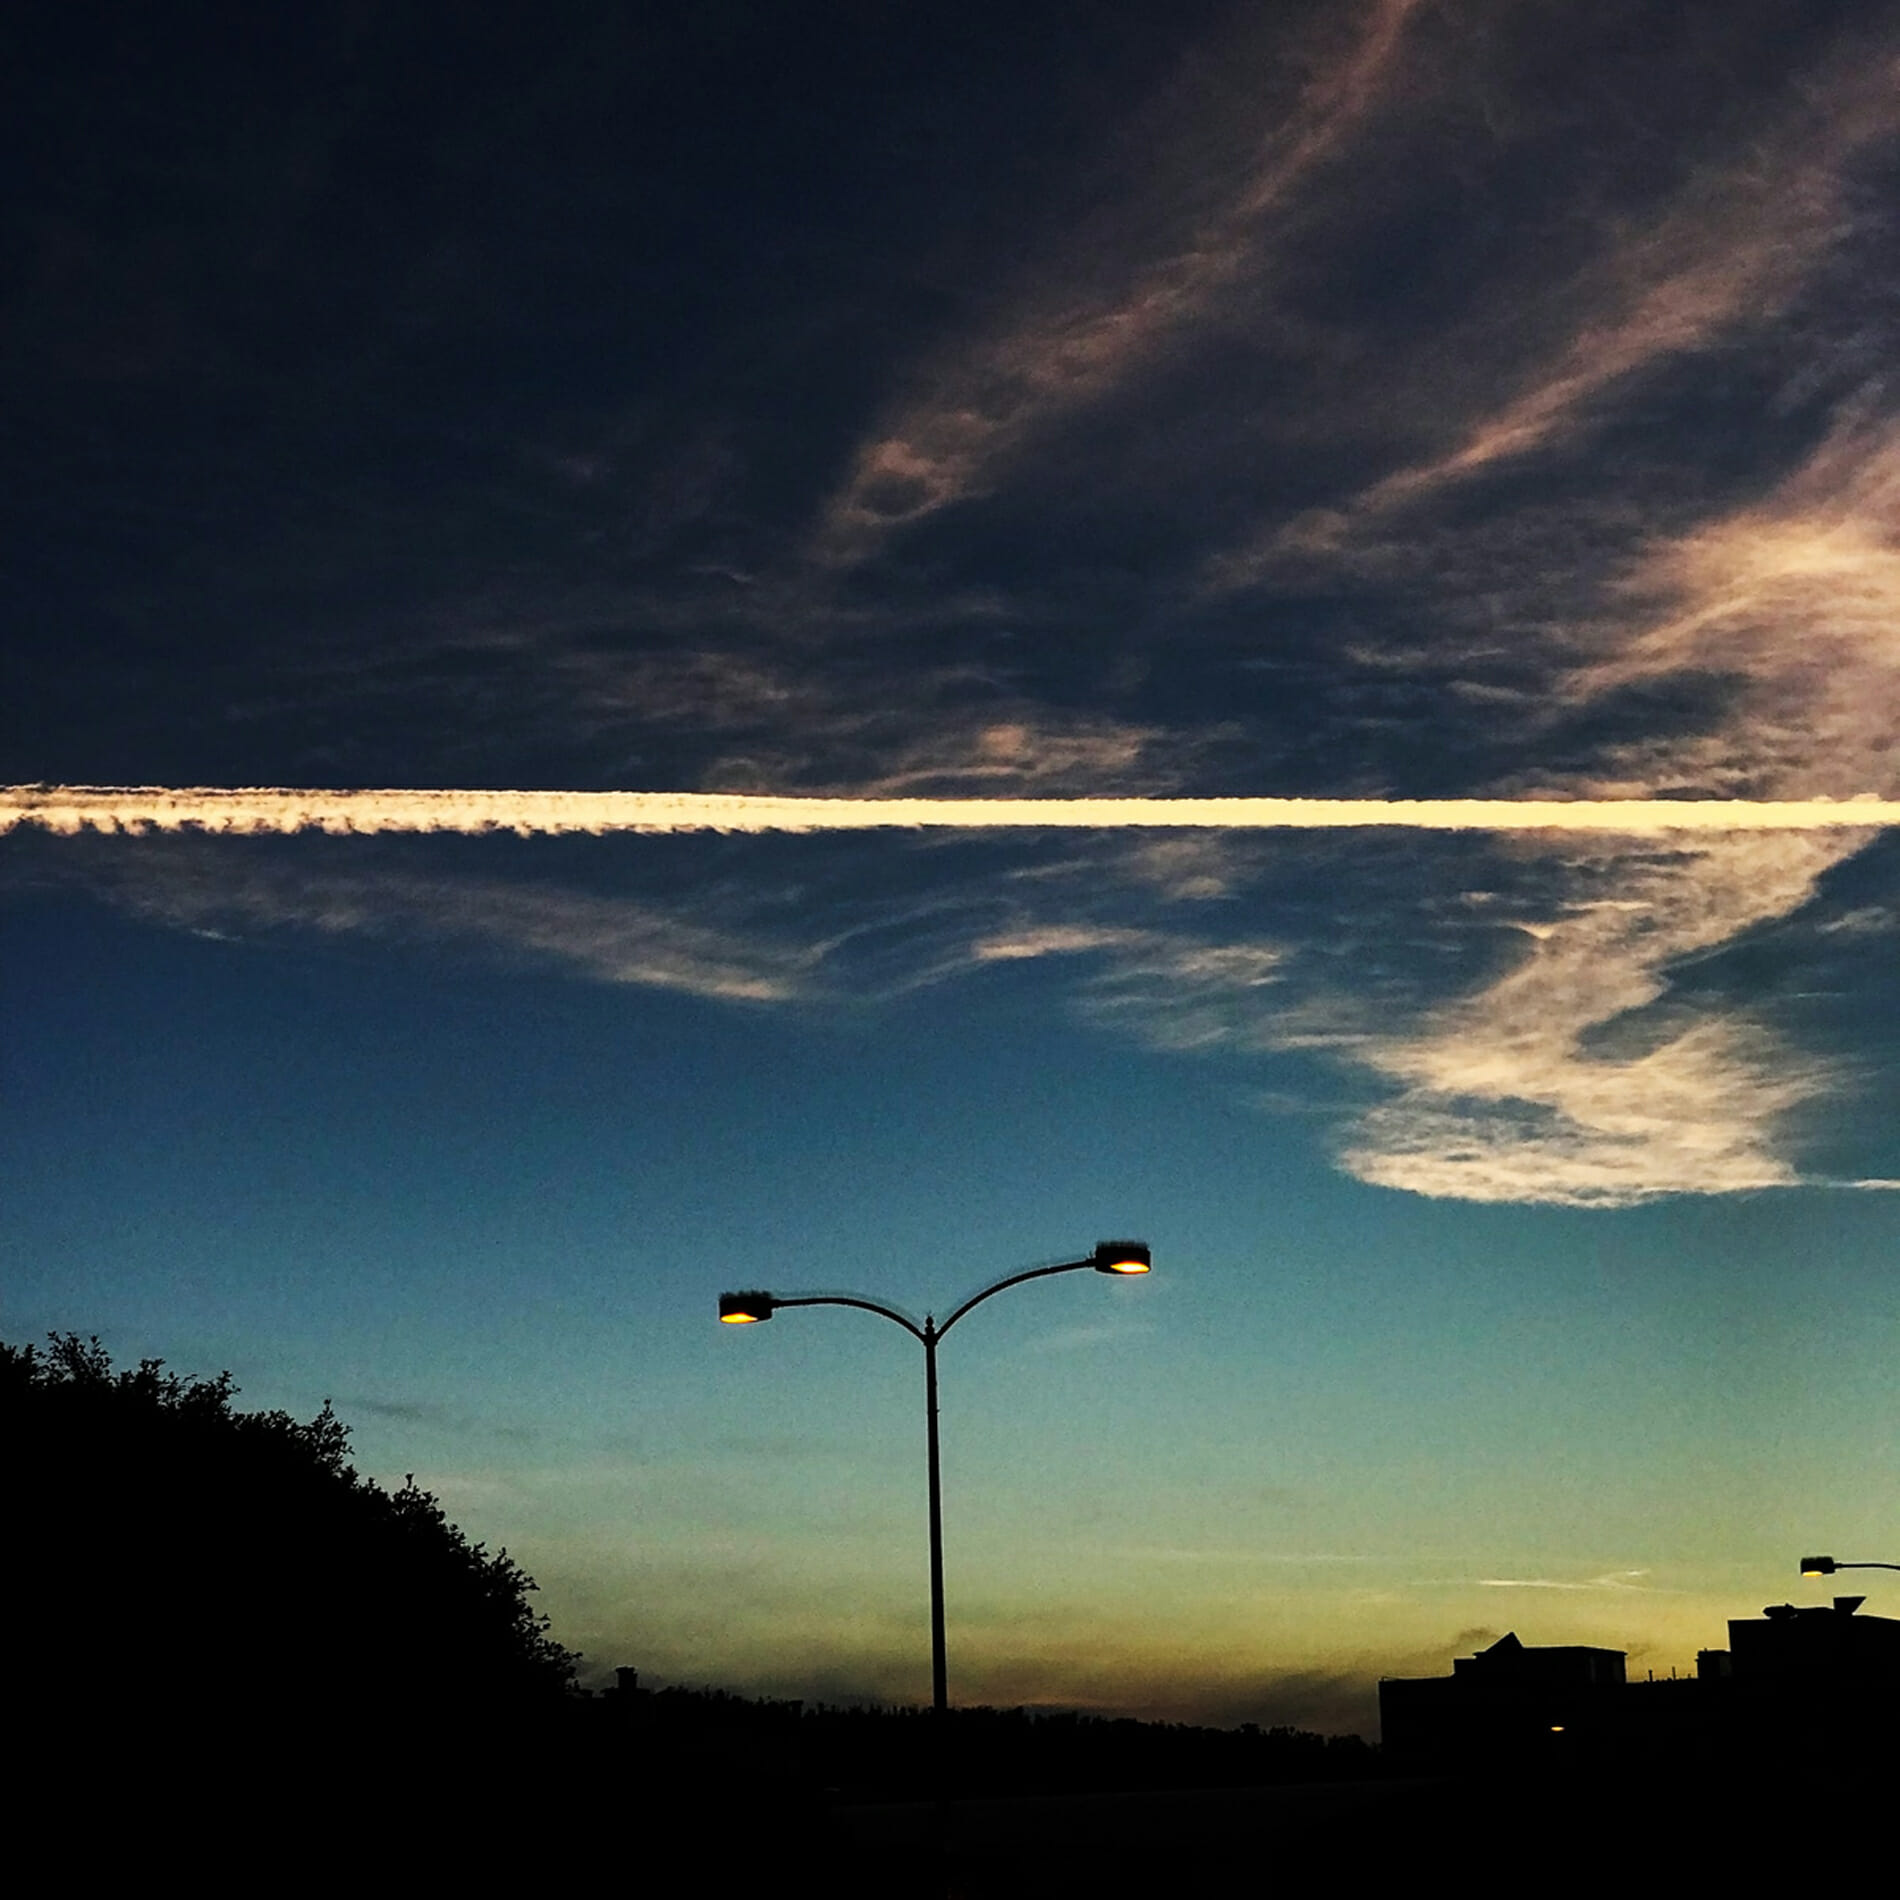 exhaust trail through sky